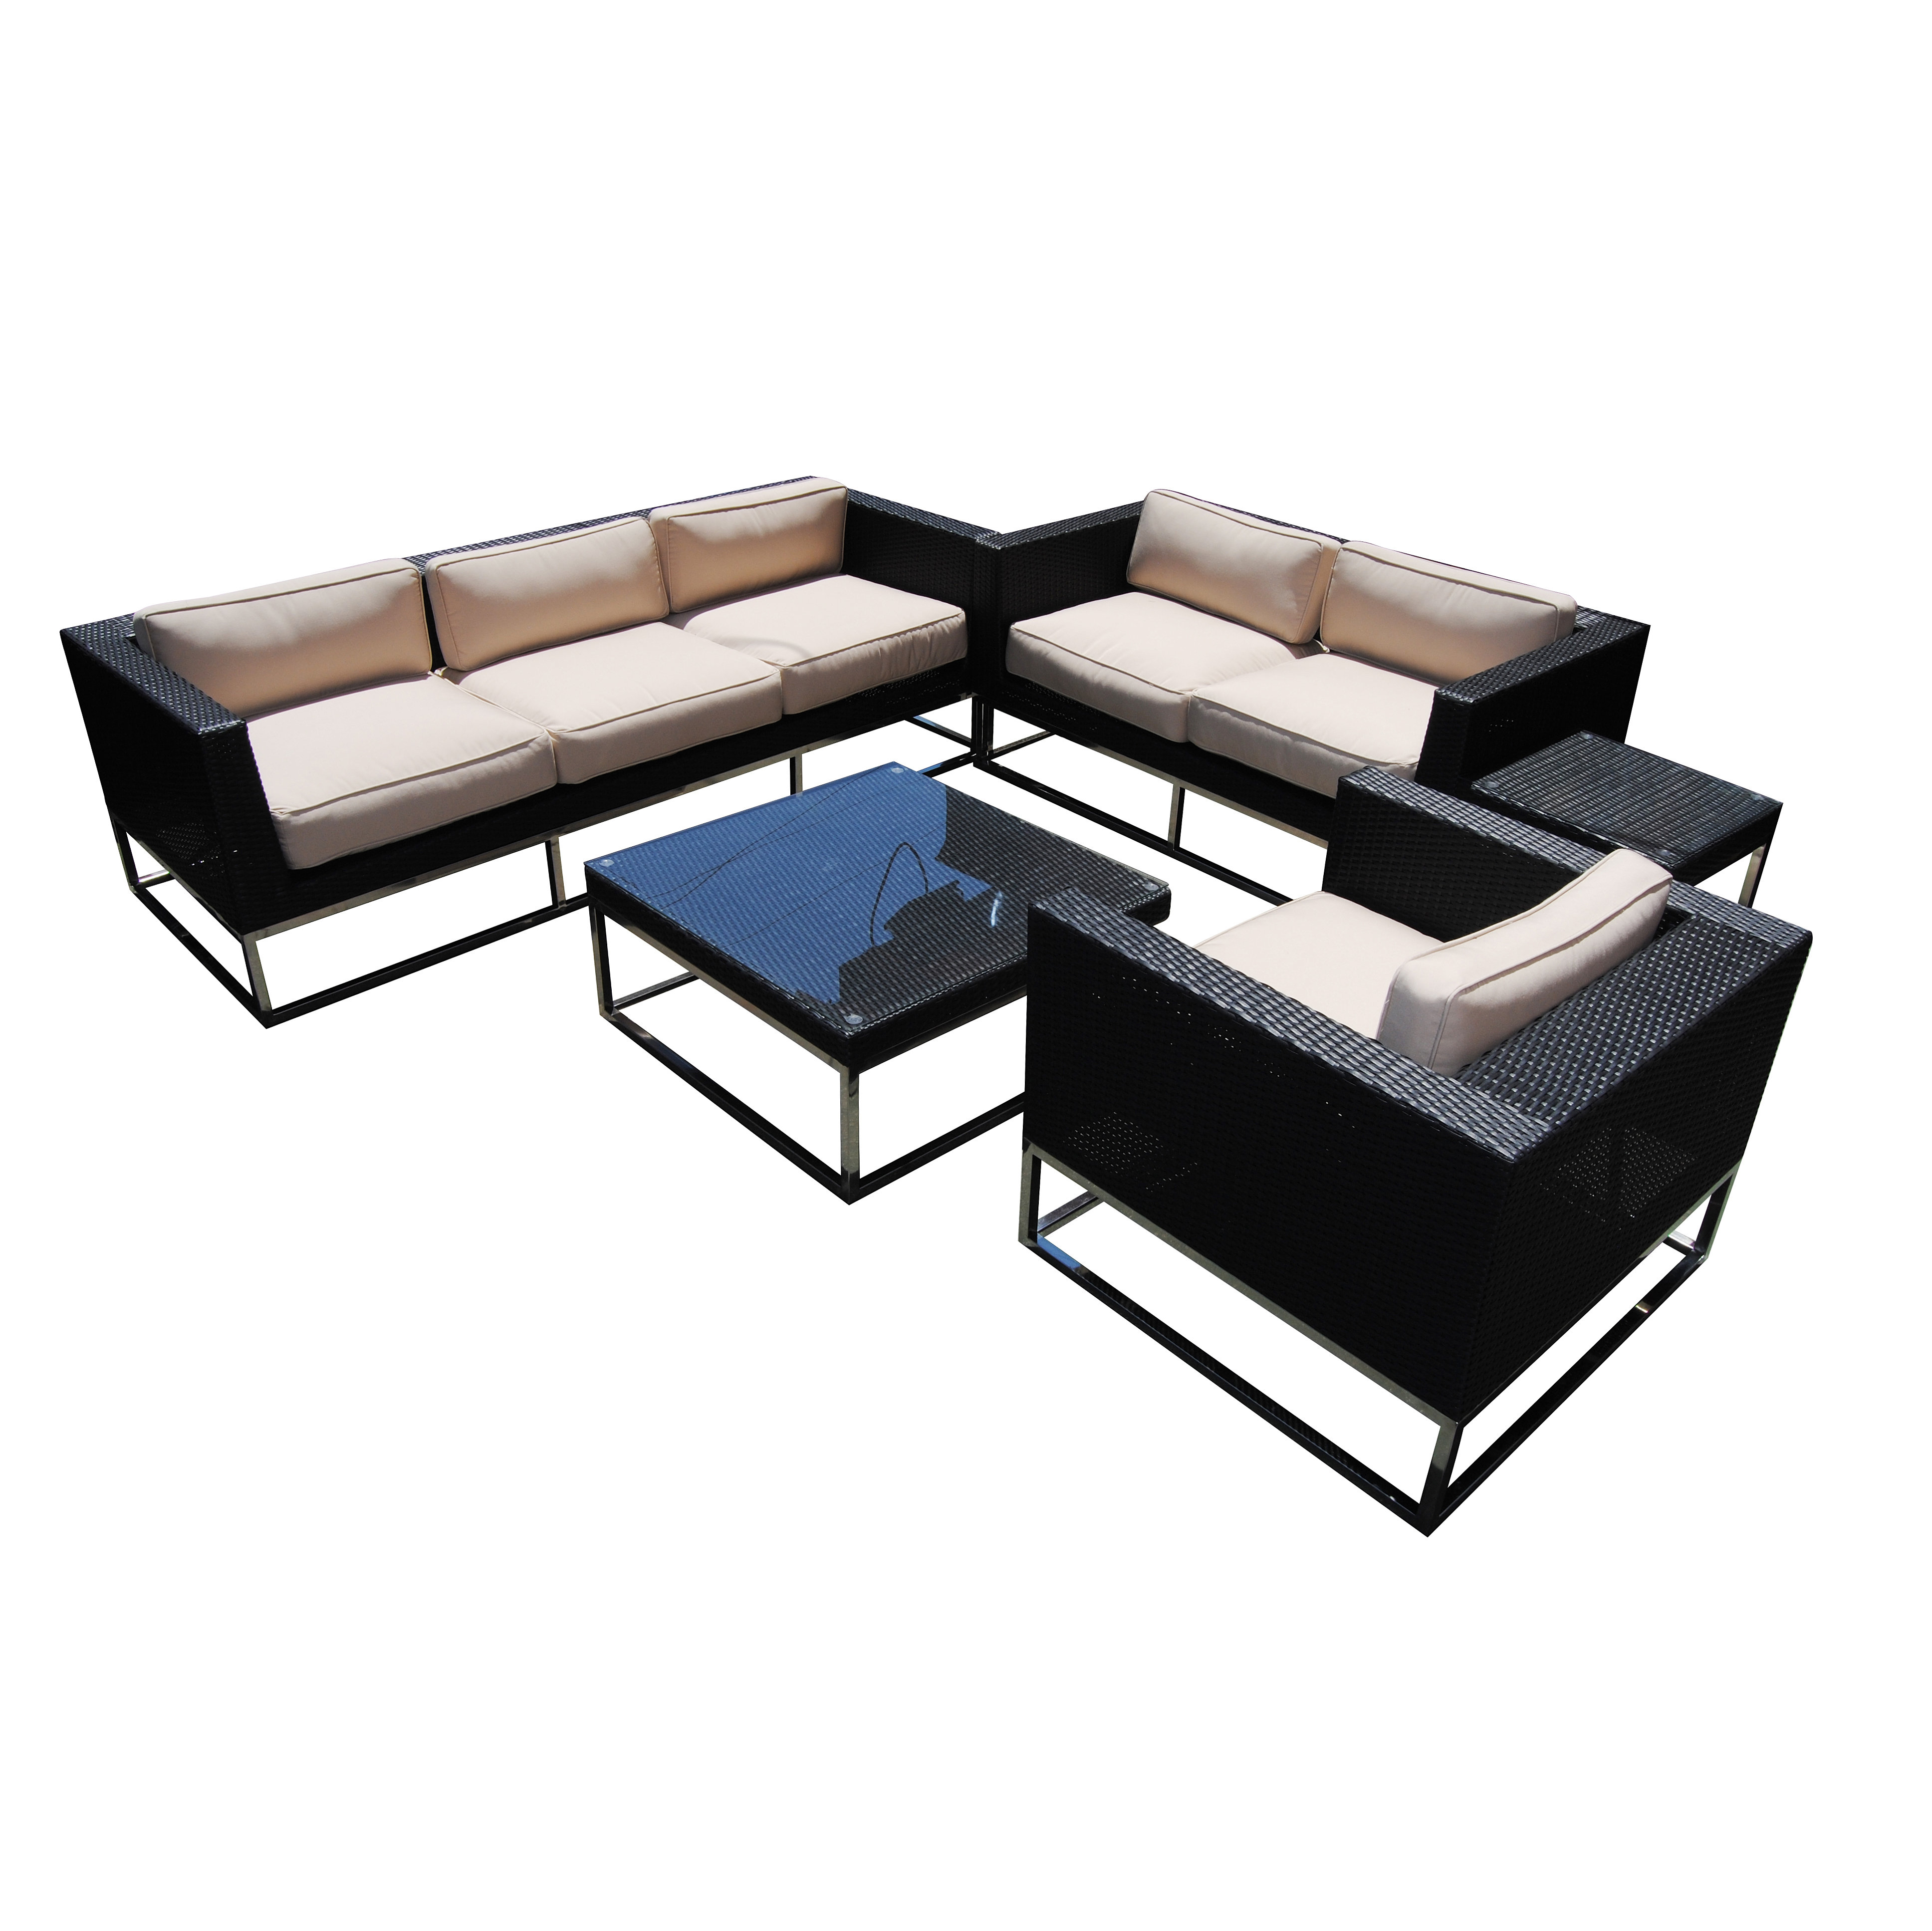 Furniture For Patio Decorating Interior Your House •